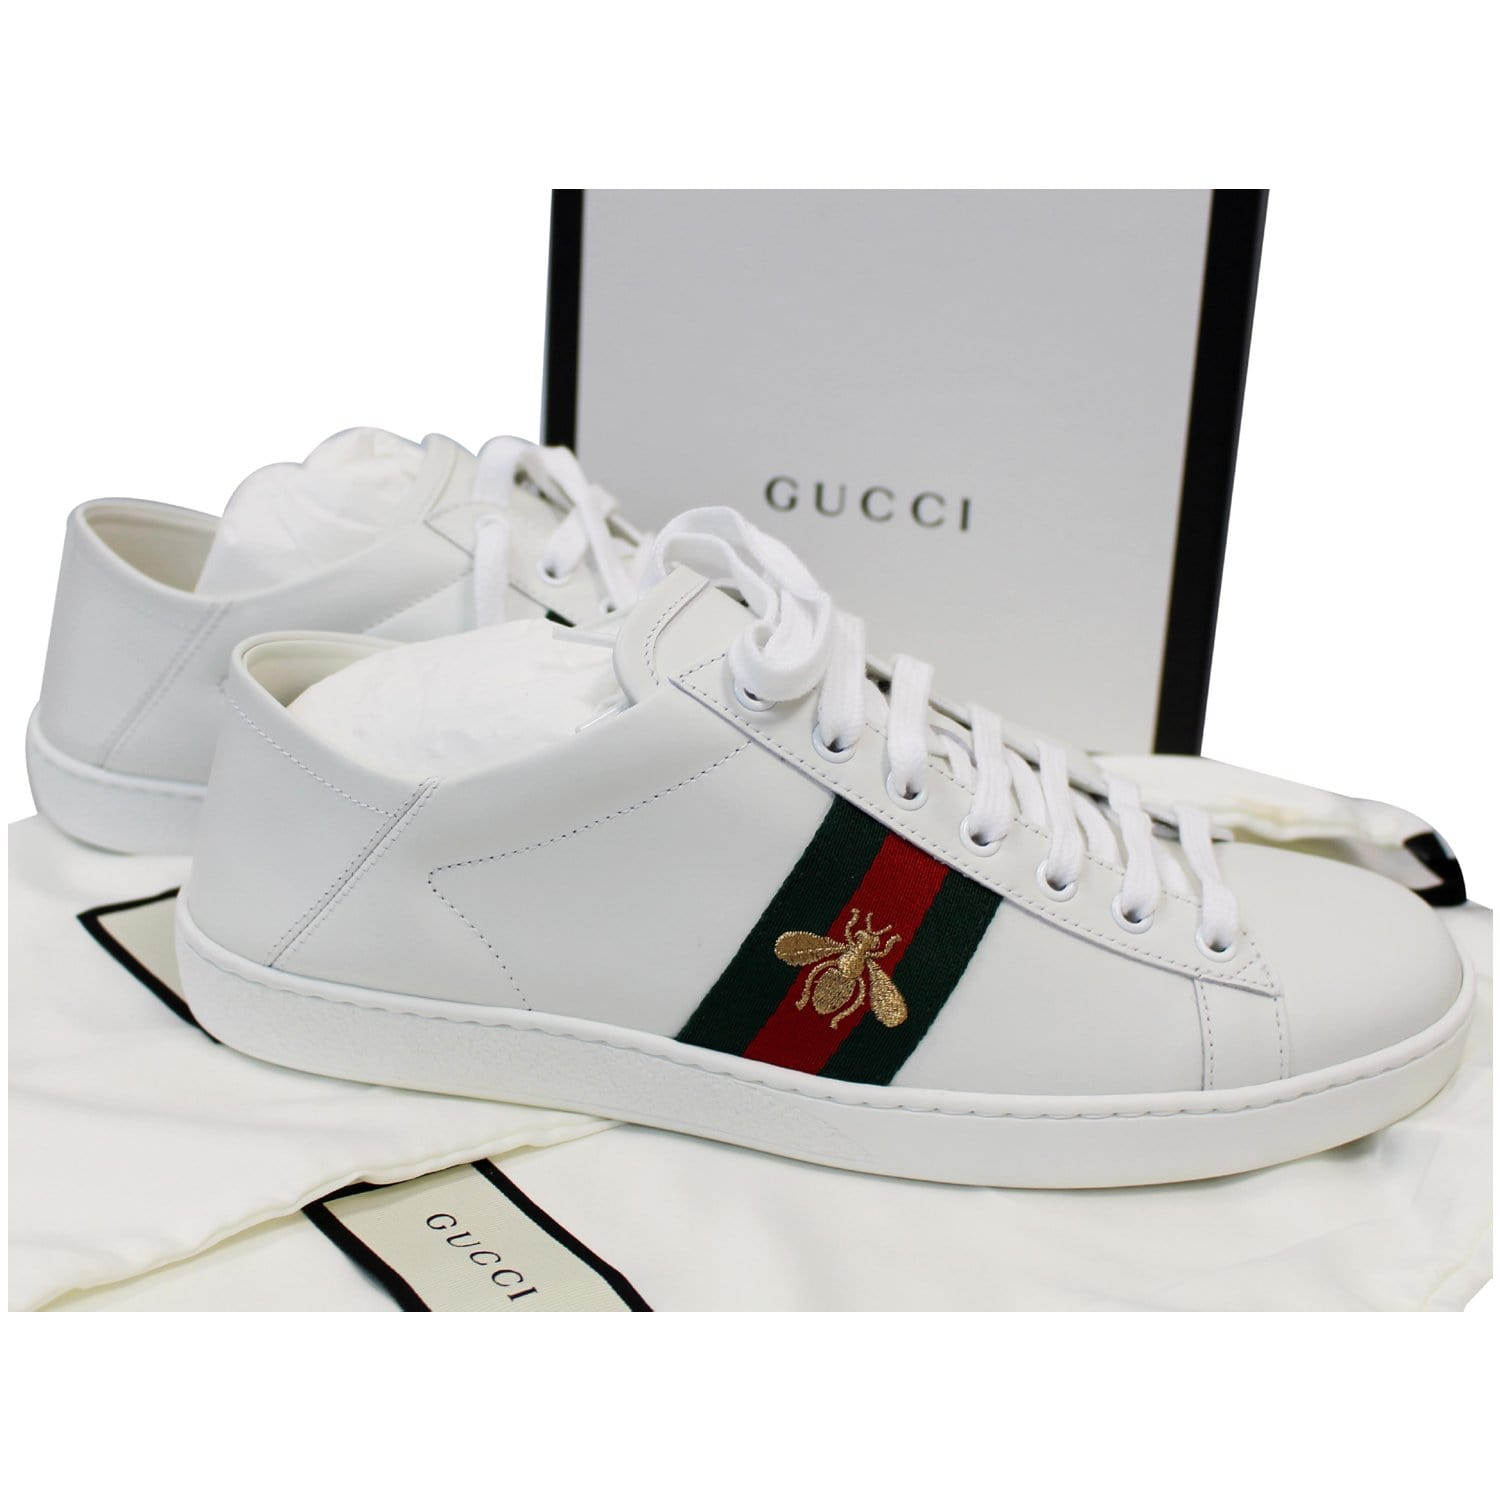 Gucci Ace Classic Low Top Sneakers